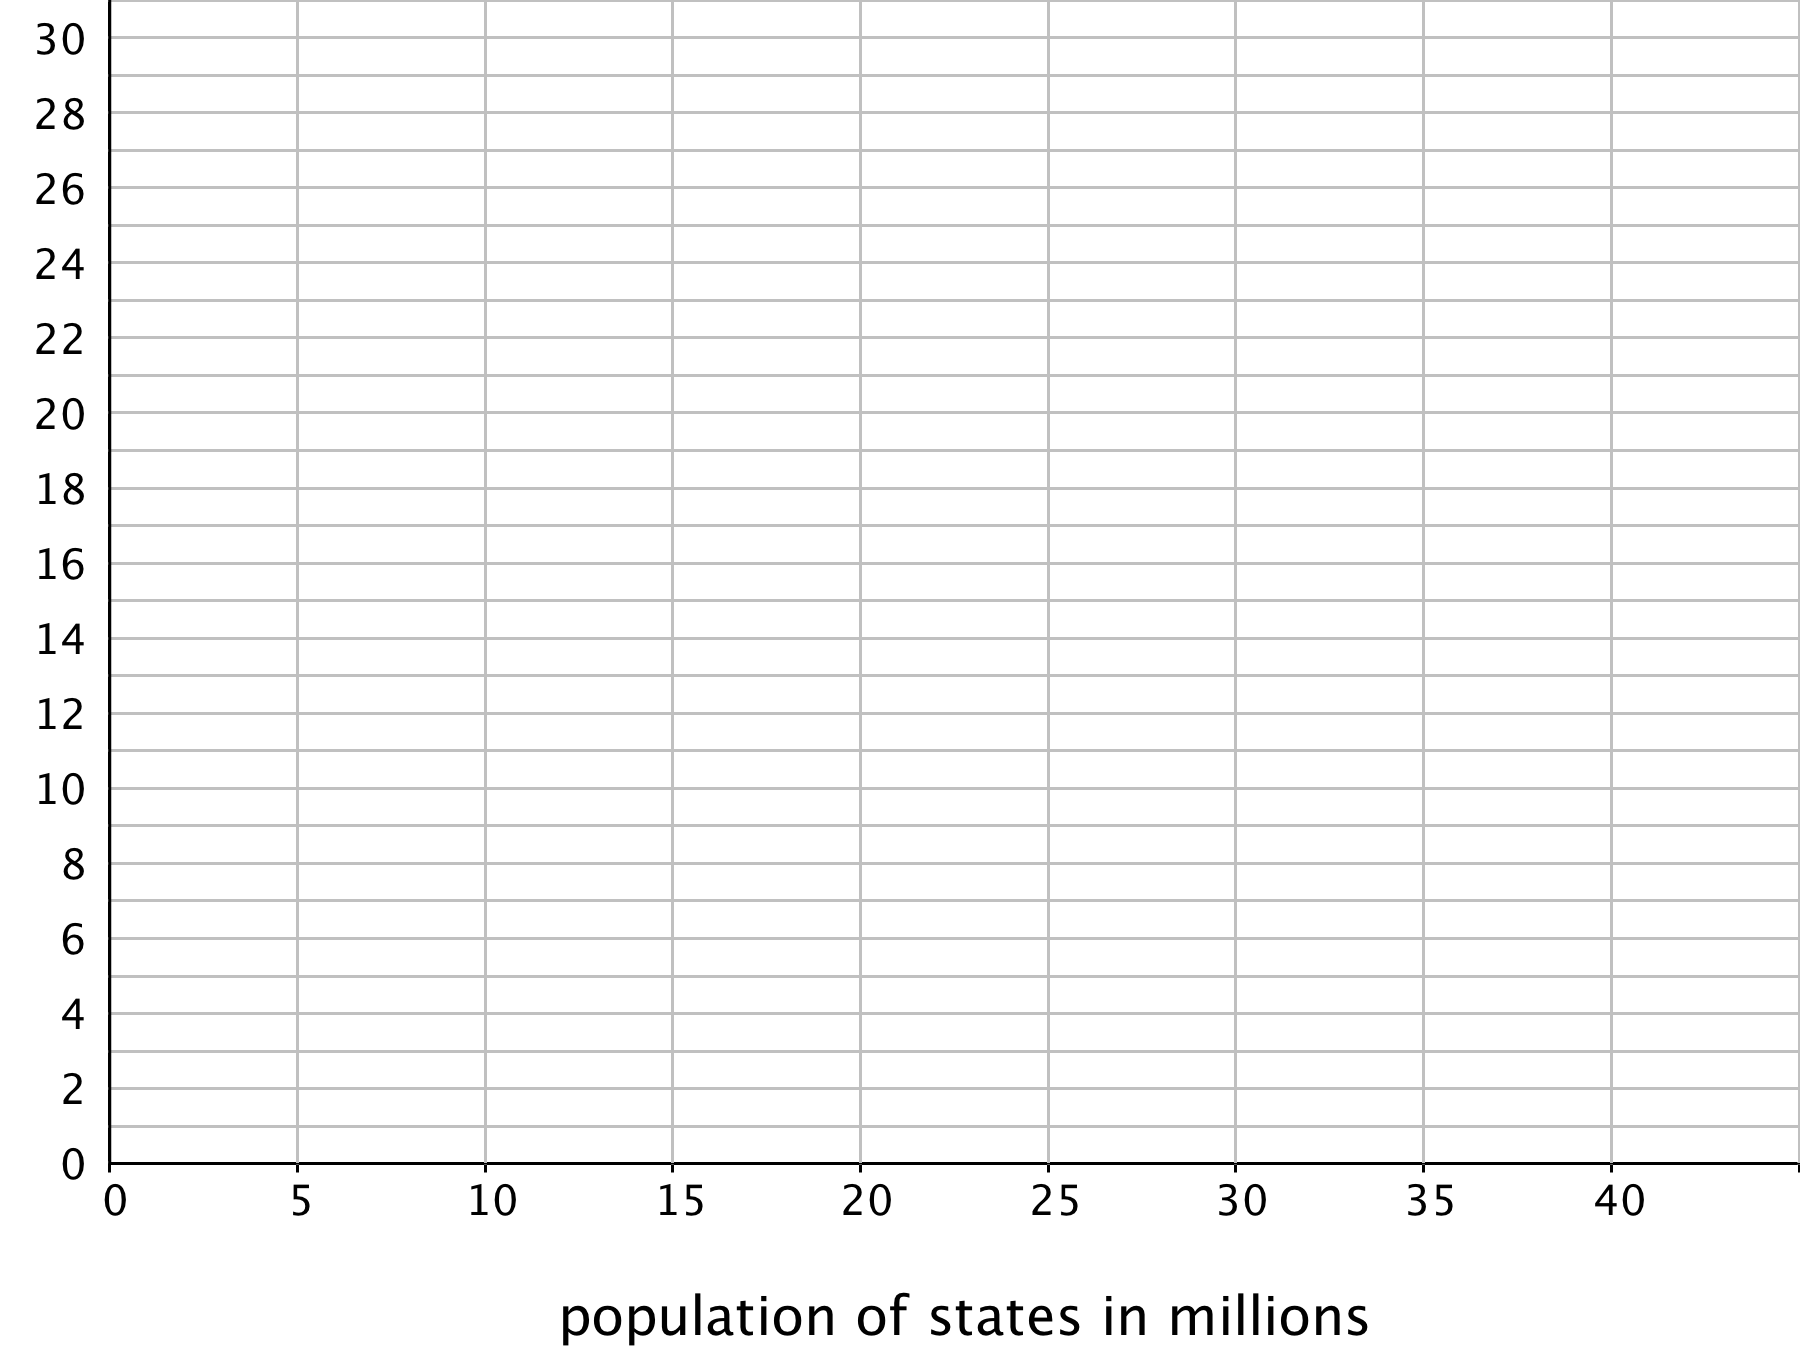 "A blank grid: The horizontal axis is labeled ""population of states in millions"" and has the numbers 0 through 40, in increments of 5, indicated. The vertical axis has the numbers 0 through 30, in increments of 2, indicated and there are tick marks midway between each indicated number."